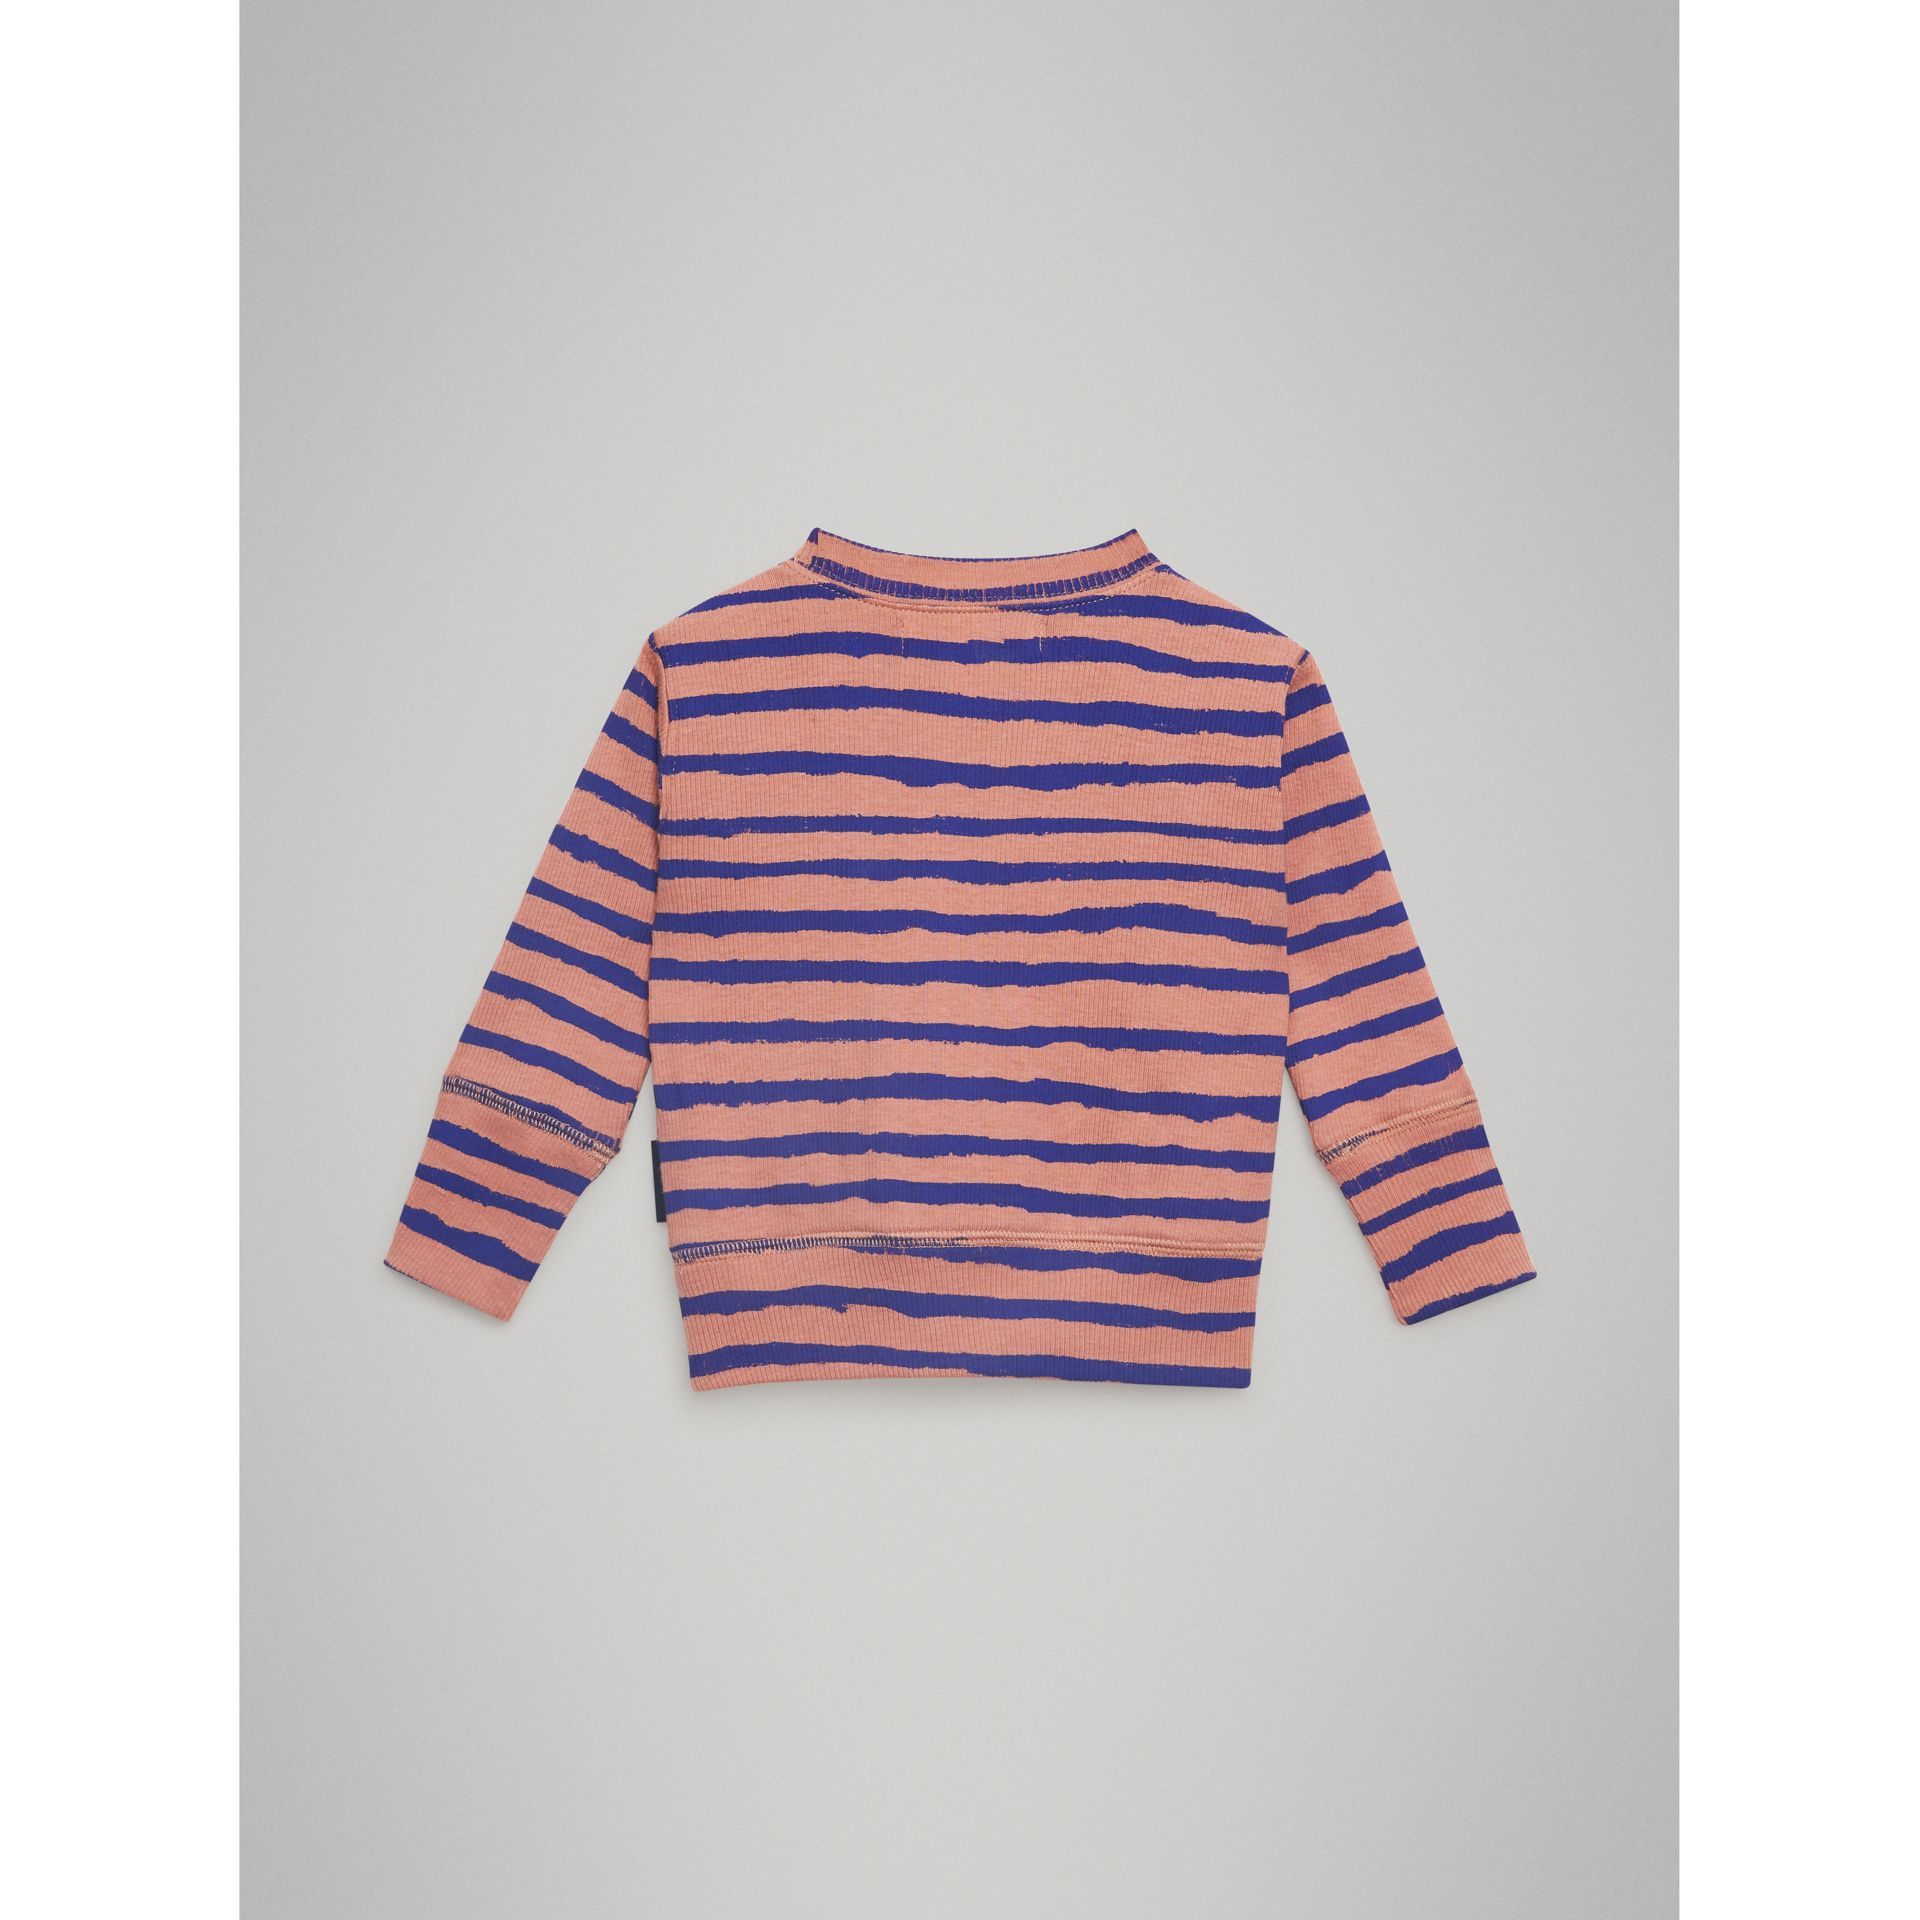 Striped Rib Knit Cotton Sweatshirt in Dusty Pink - Children | Burberry Australia - gallery image 3